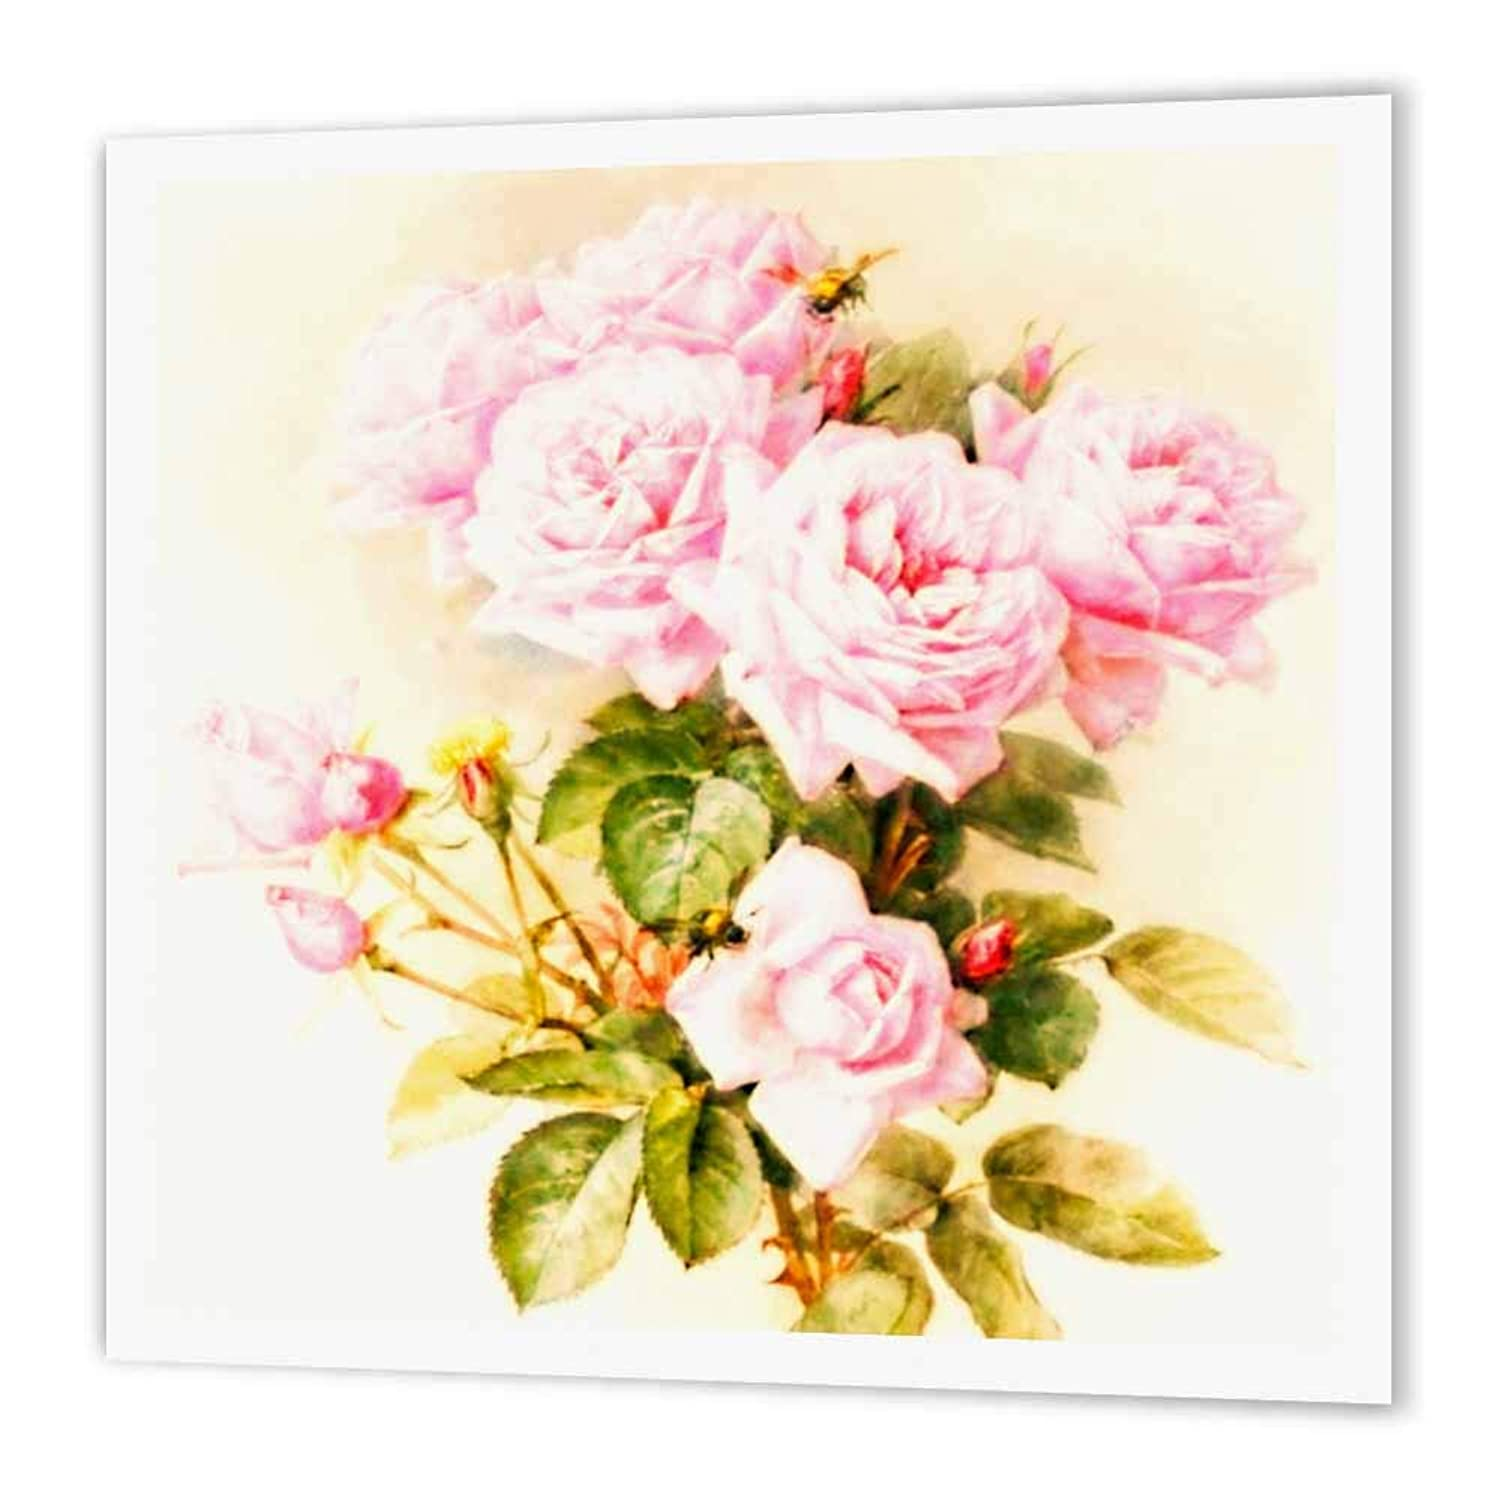 3dRose ht_151447_1 Paul De Longpre Shabby Chic Vintage Pink Roses Sun-Faded Antique Flowers Fine Art Girly Floral Iron on Heat Transfer Paper for White Material, 8 by 8